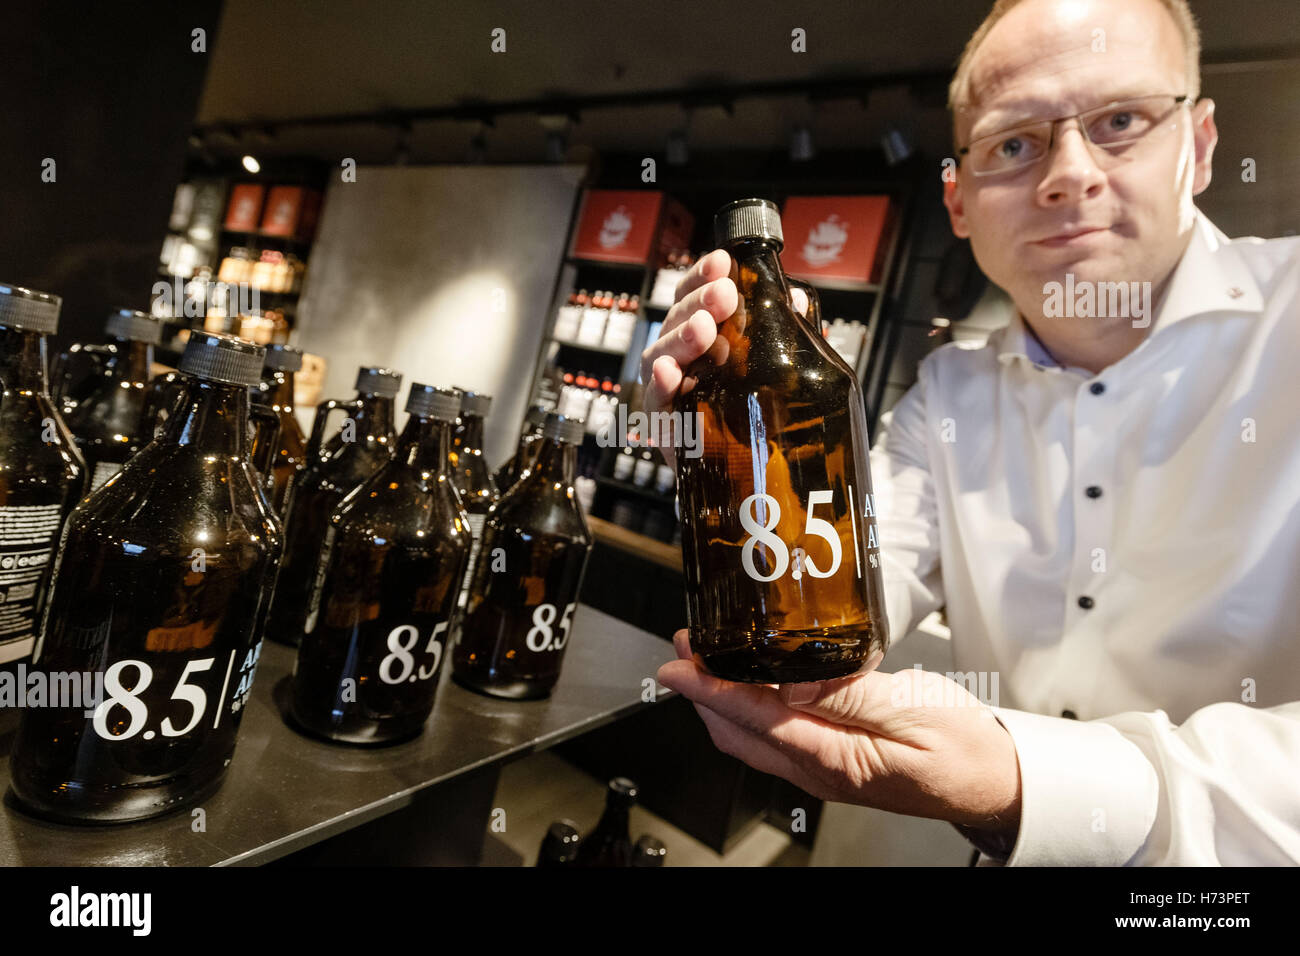 Service personnel Christoph Beyer shows a 'growler' used to let guests choose the beer of their liking to - Stock Image